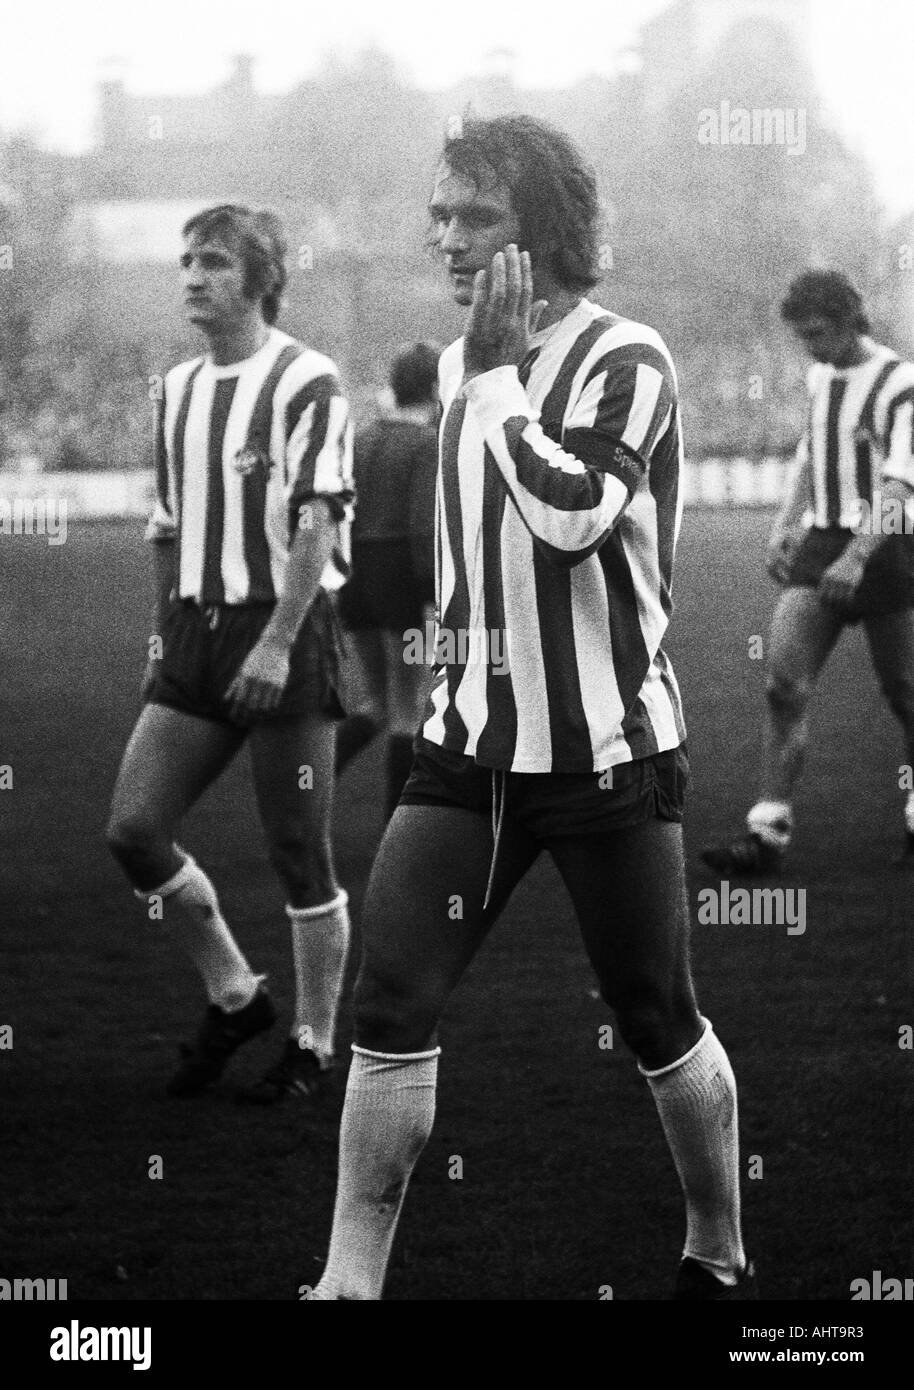 football, Bundesliga, 1971/1972, VfL Bochum versus 1. FC Cologne 1:5, Stadium at the Castroper Strasse in Bochum, football players leaving the pitch, left Hannes Loehr, right Wolfgang Overath (both Koeln) - Stock Image